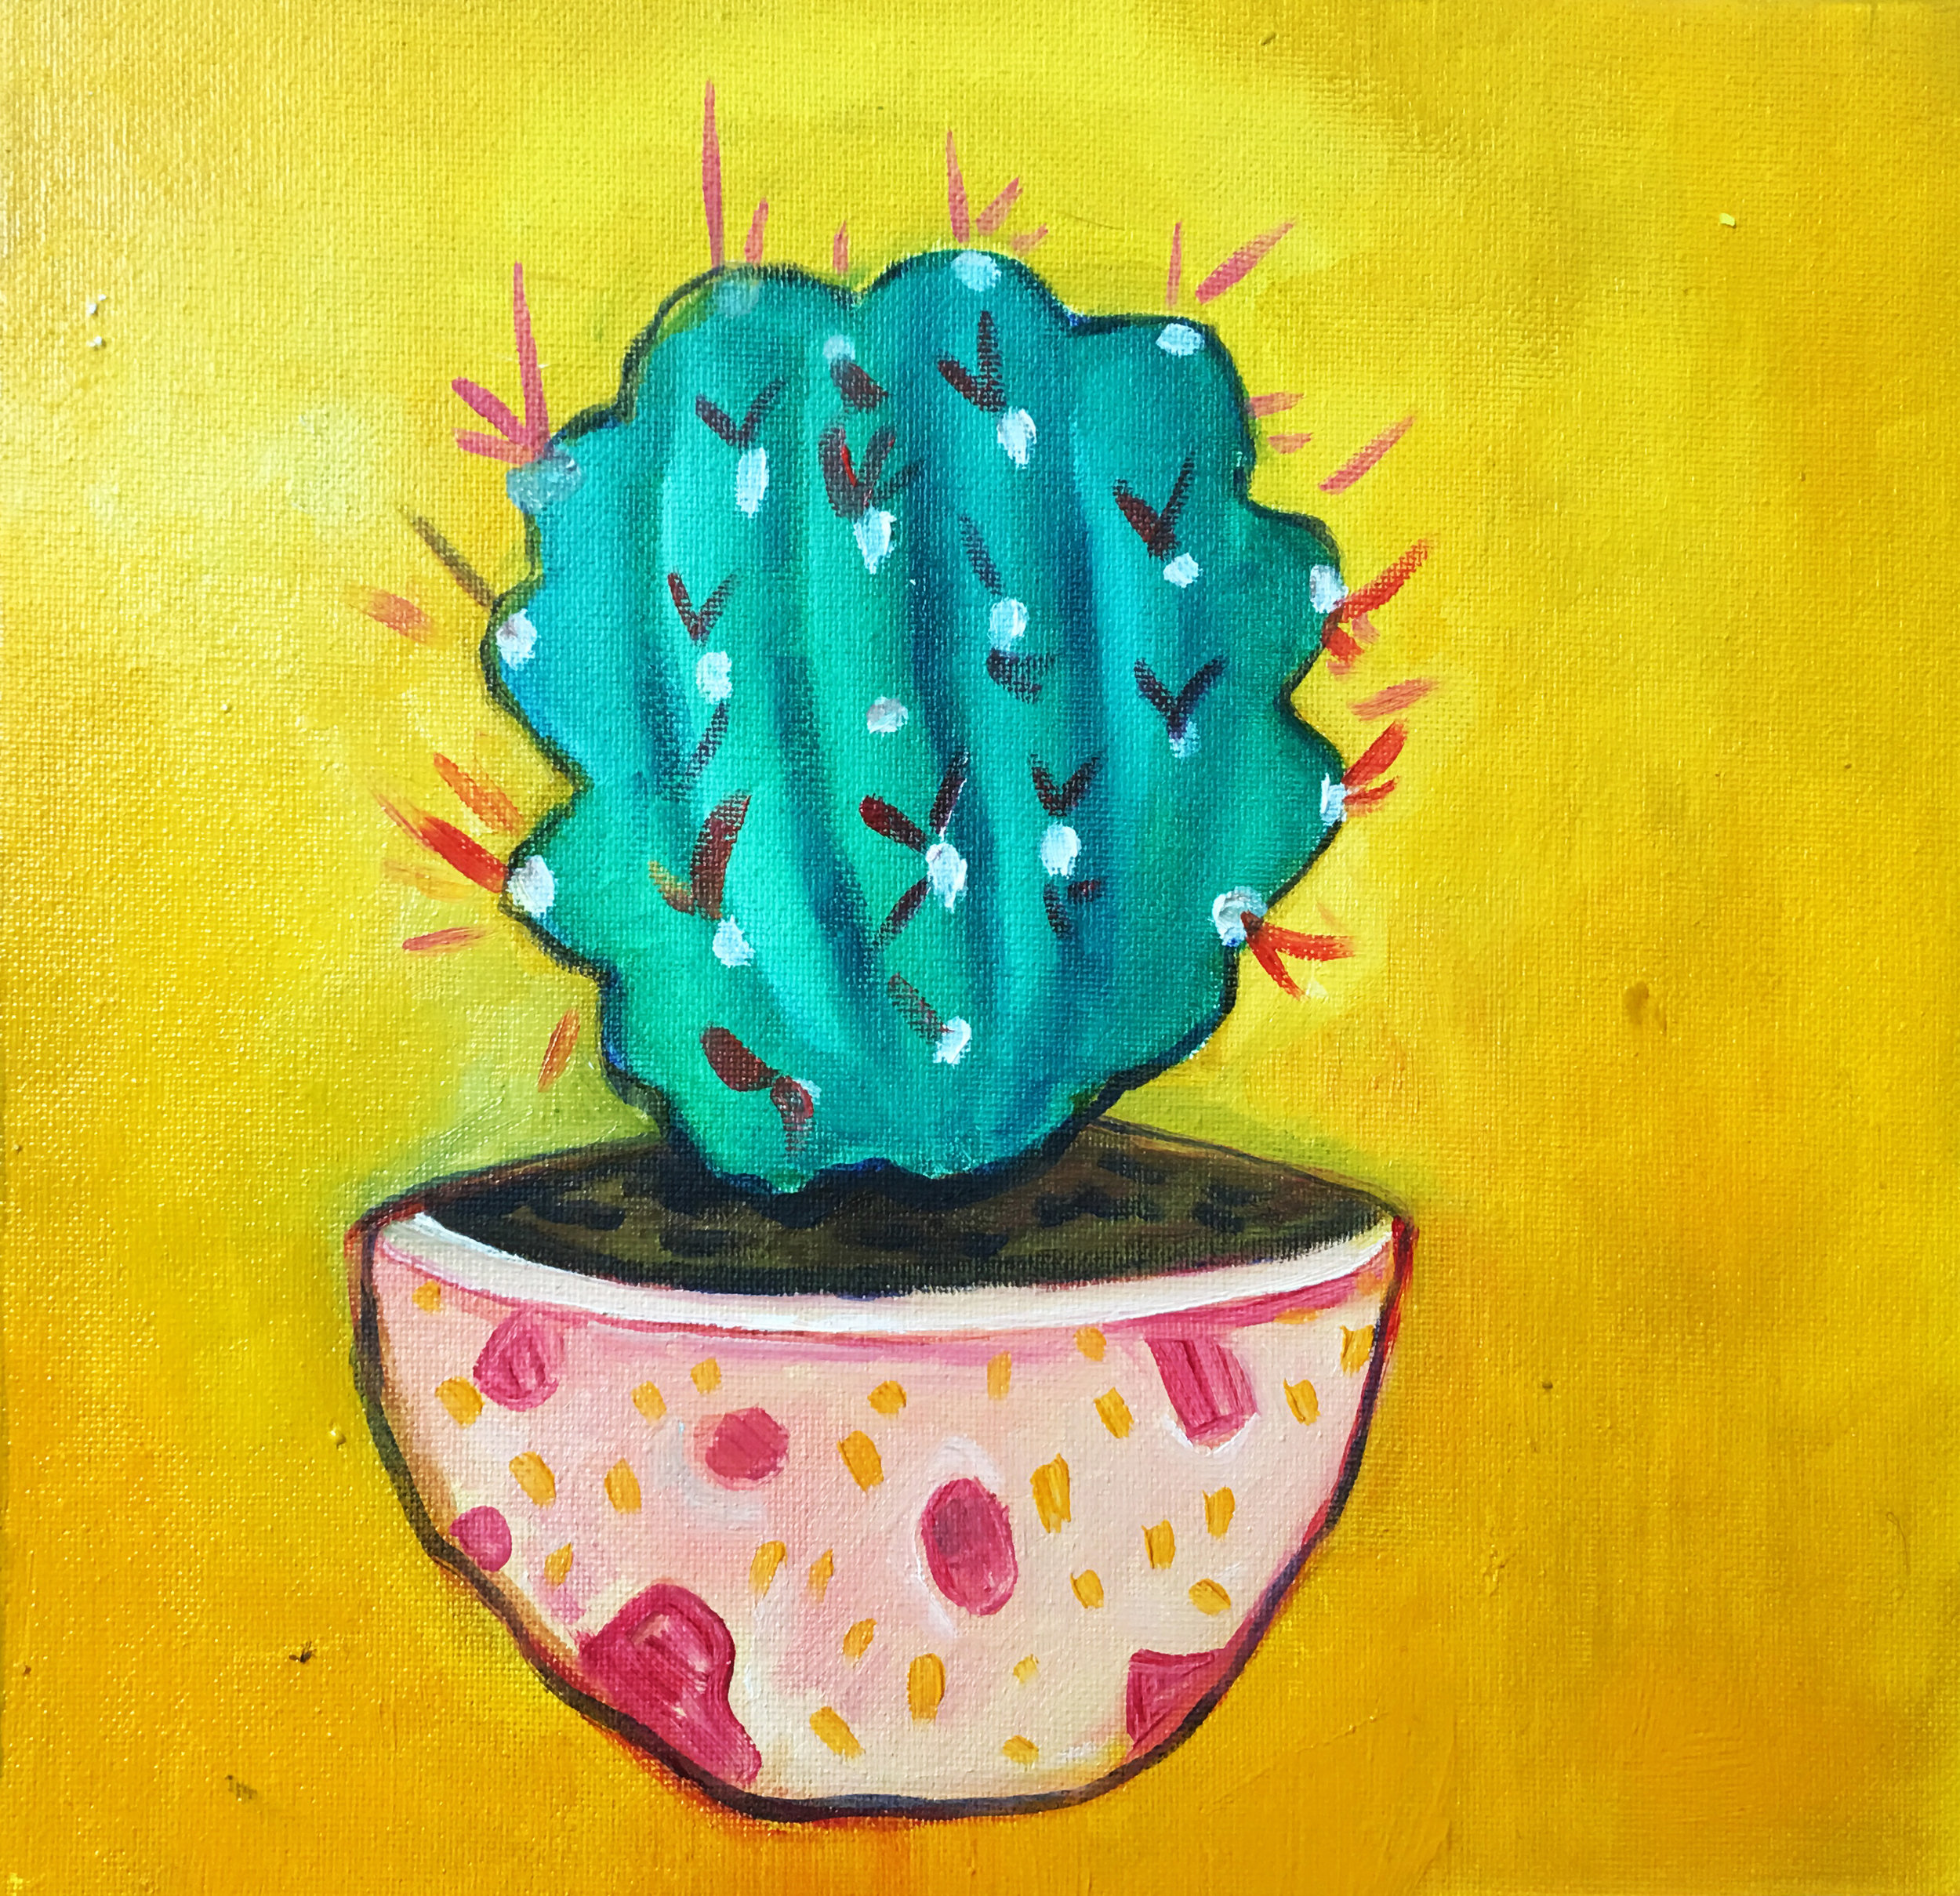 Mexican Cactus (15x15cm) - Was £150 -  Now £70